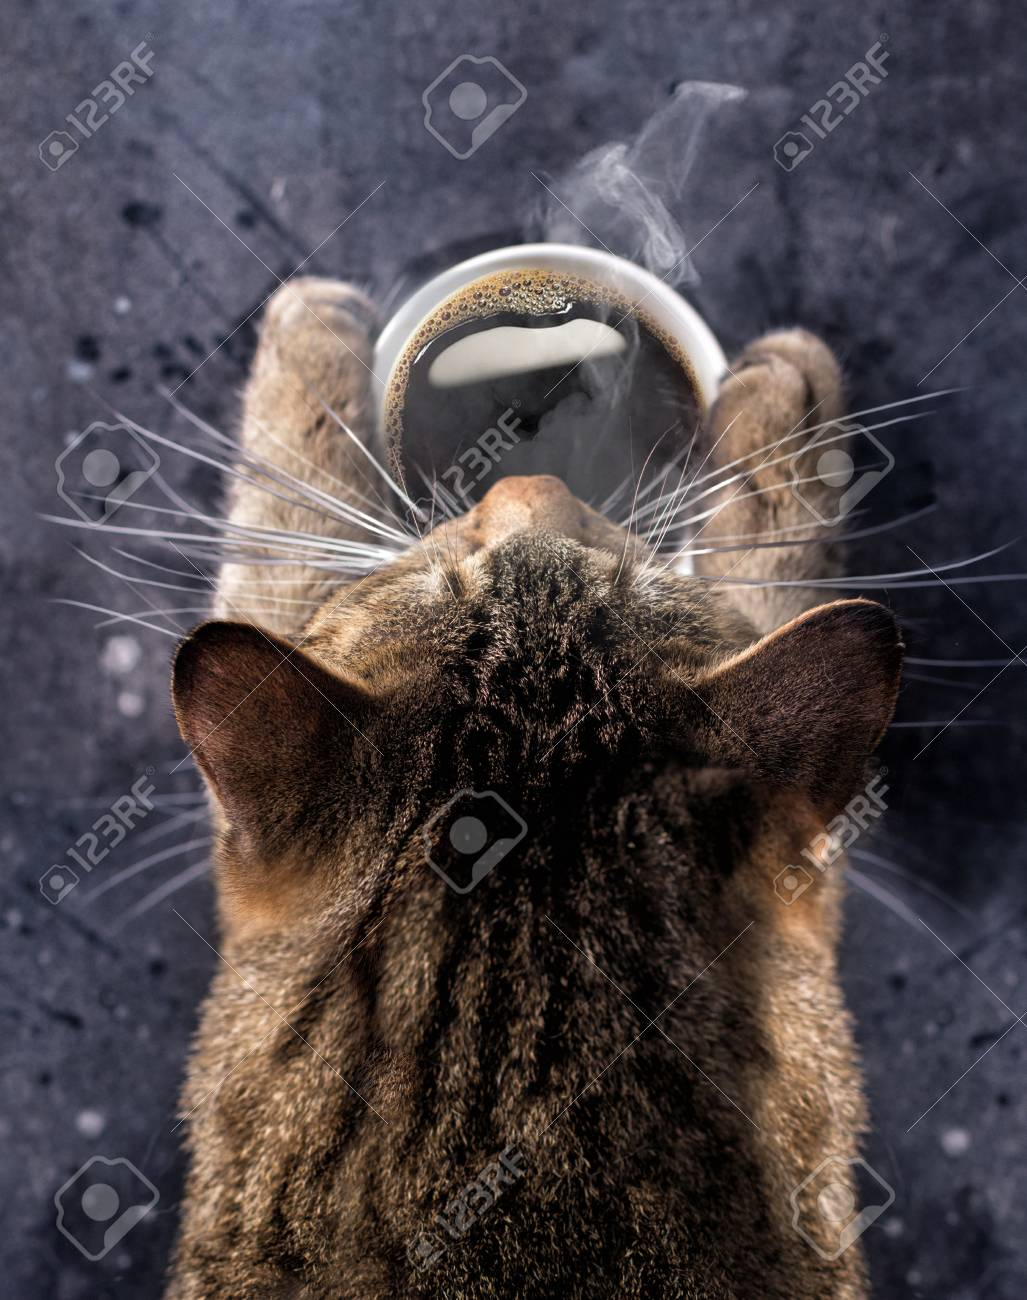 Cat's paws hold a cup of hot black coffee. A gray cat bent over a cup of coffee with steam. - 81150021